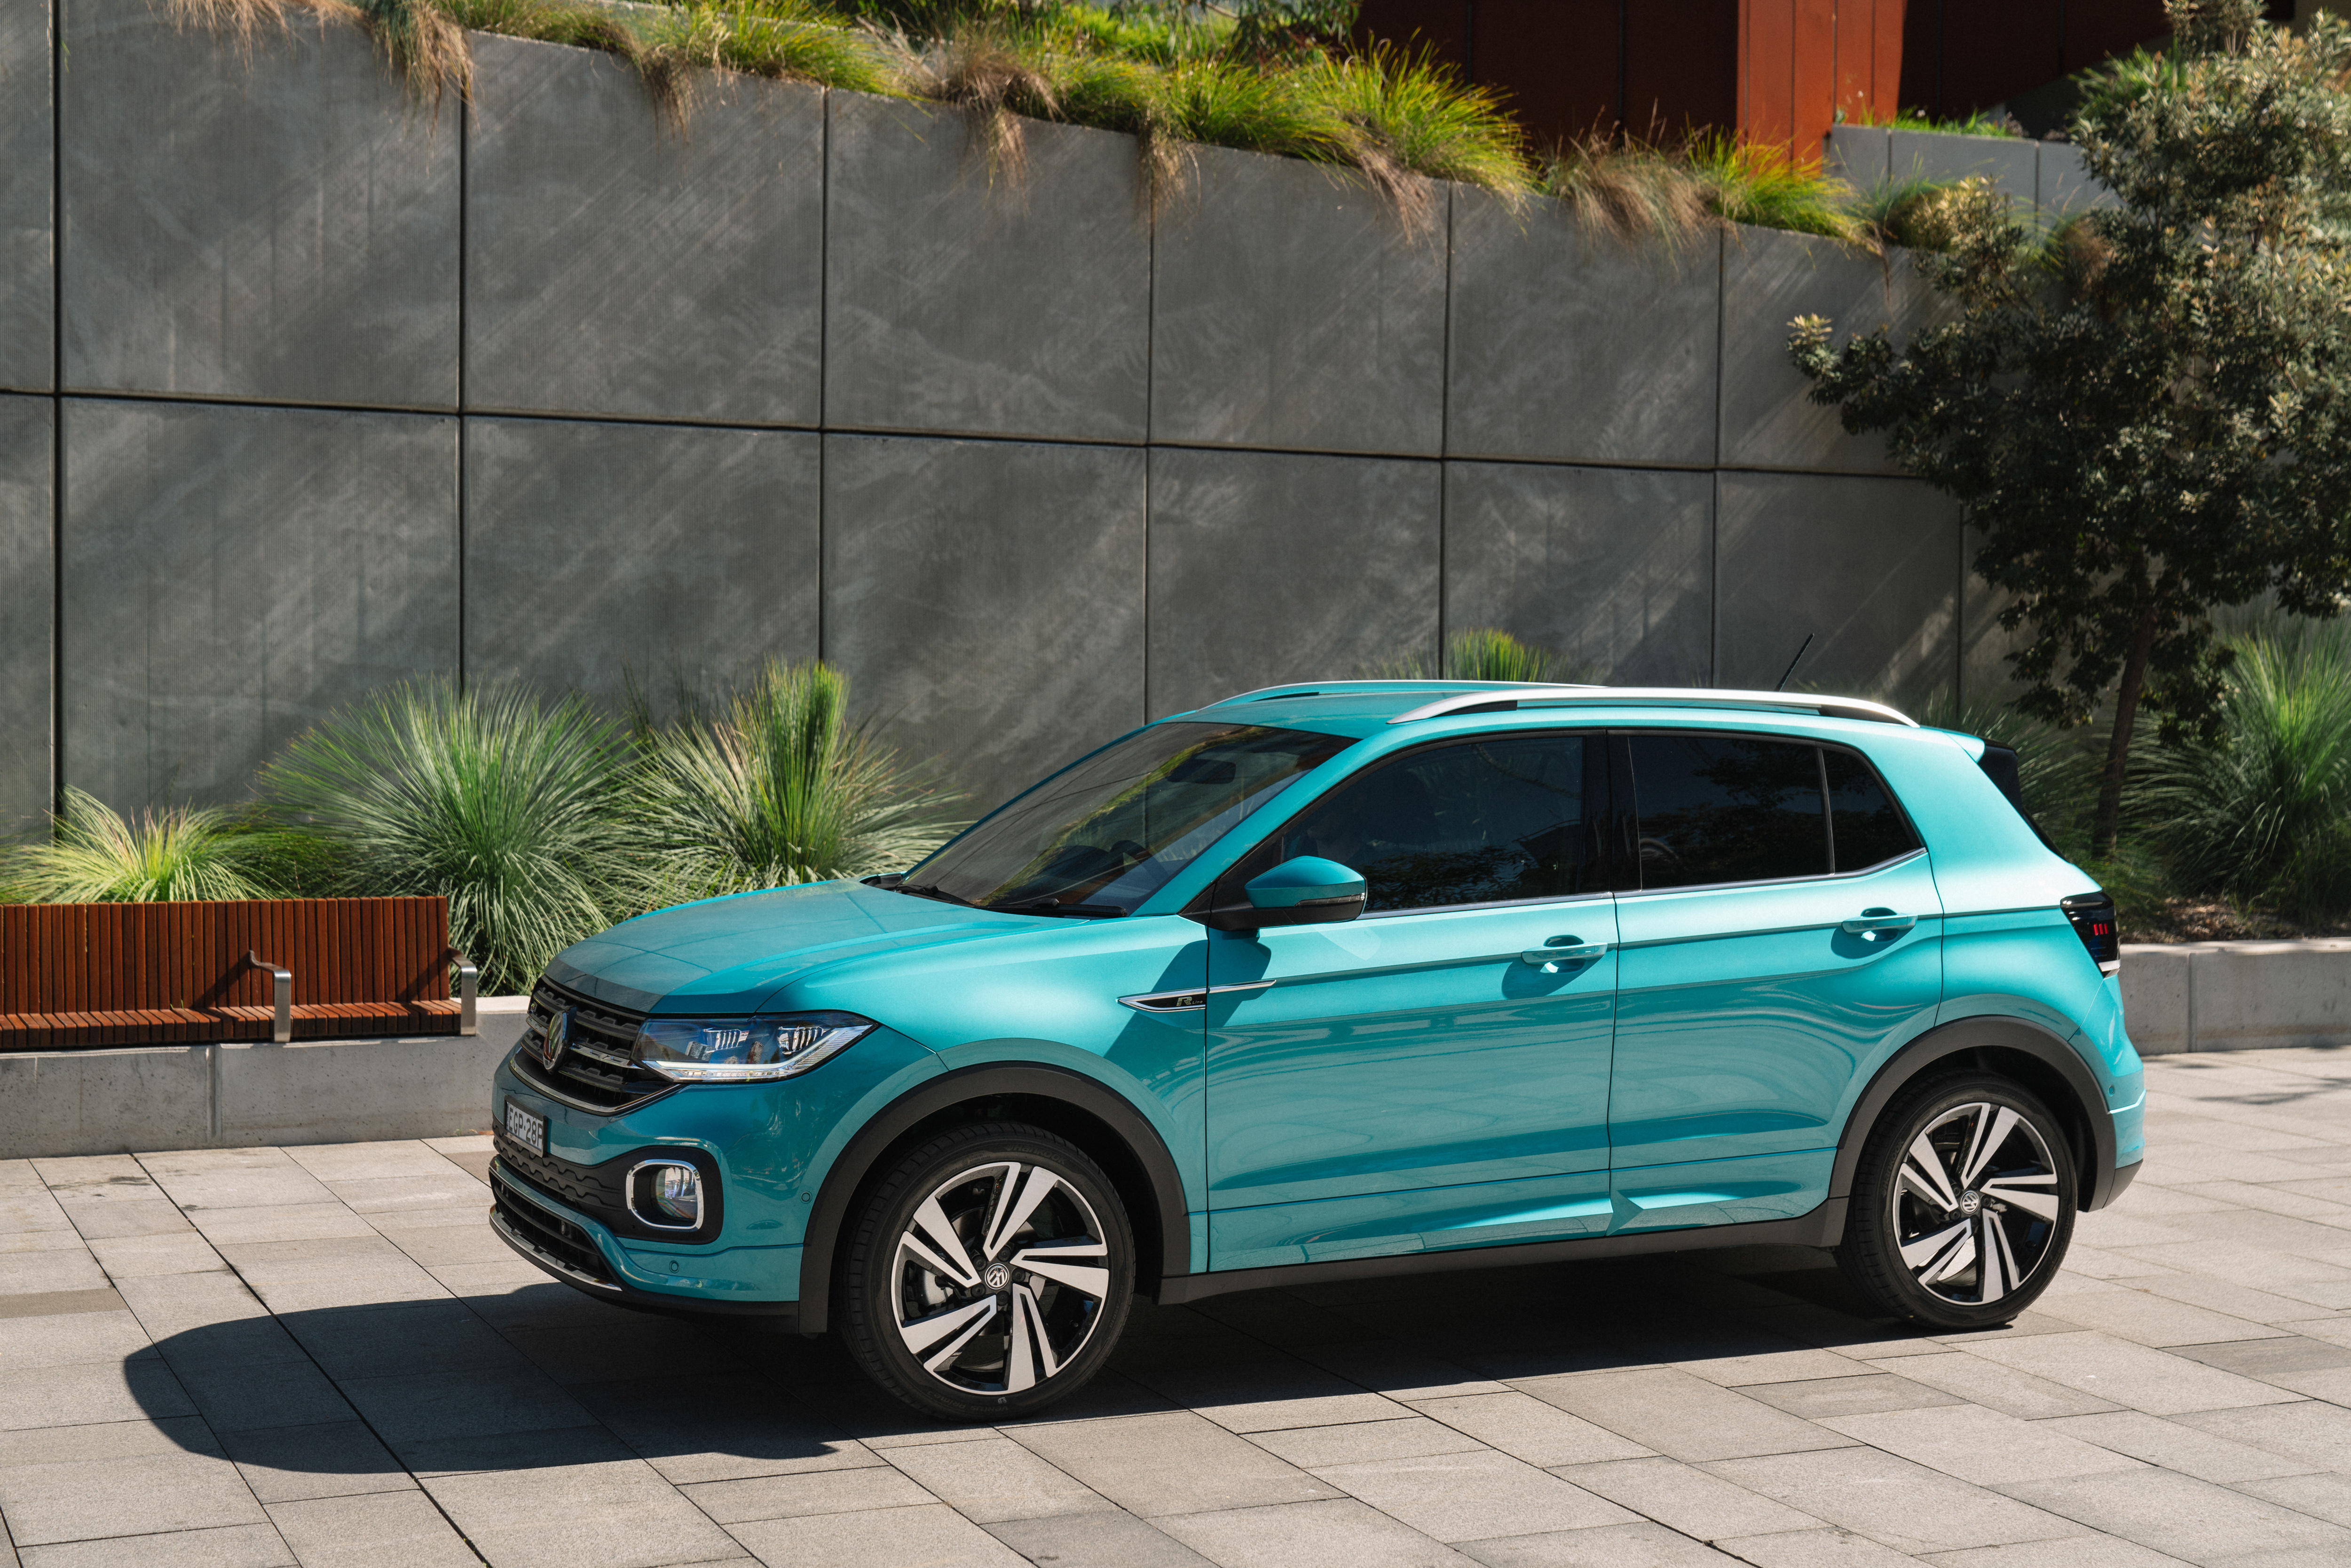 Volkswagen's compact T-Cross SUV – a little expensive but highly equipped for the money